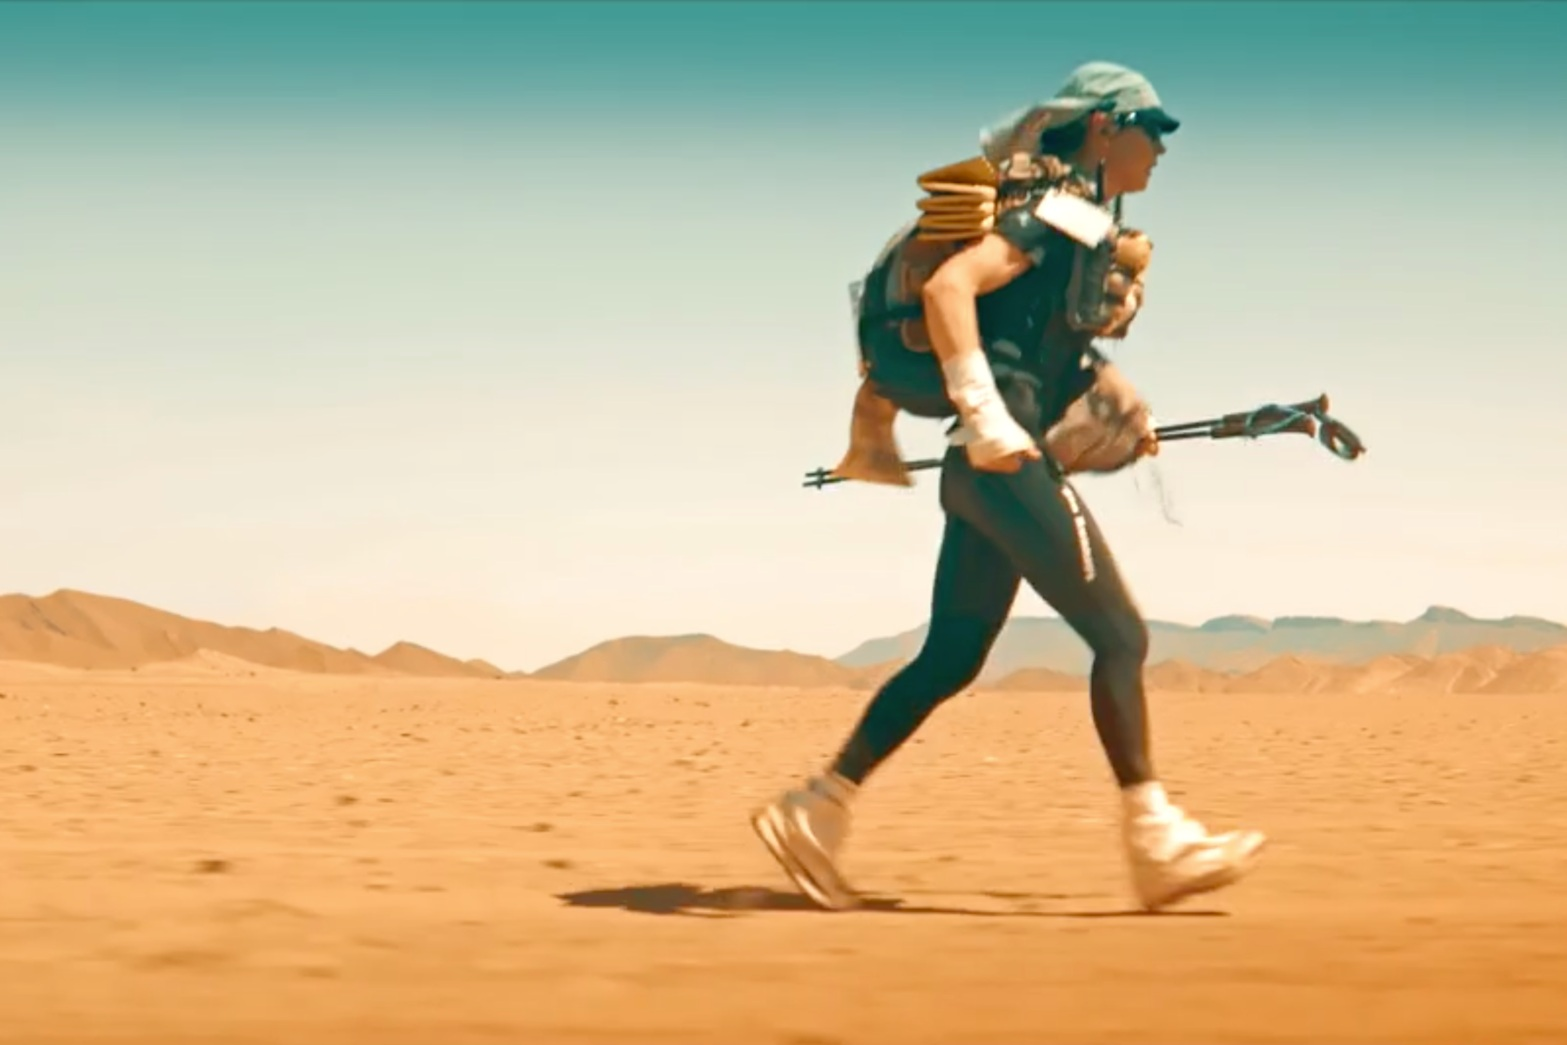 """Running For Good - This film follows Fiona Oakes in her attempt to compete in the """"toughest footrace on earth,"""" the Marathon Des Sables, a 250km race through the Sahara Desert. Her motivation? A deep desire to raise awareness for the plight of animals.Run time: 1 hour 14 minutesDirector: Keegan Kuhn"""